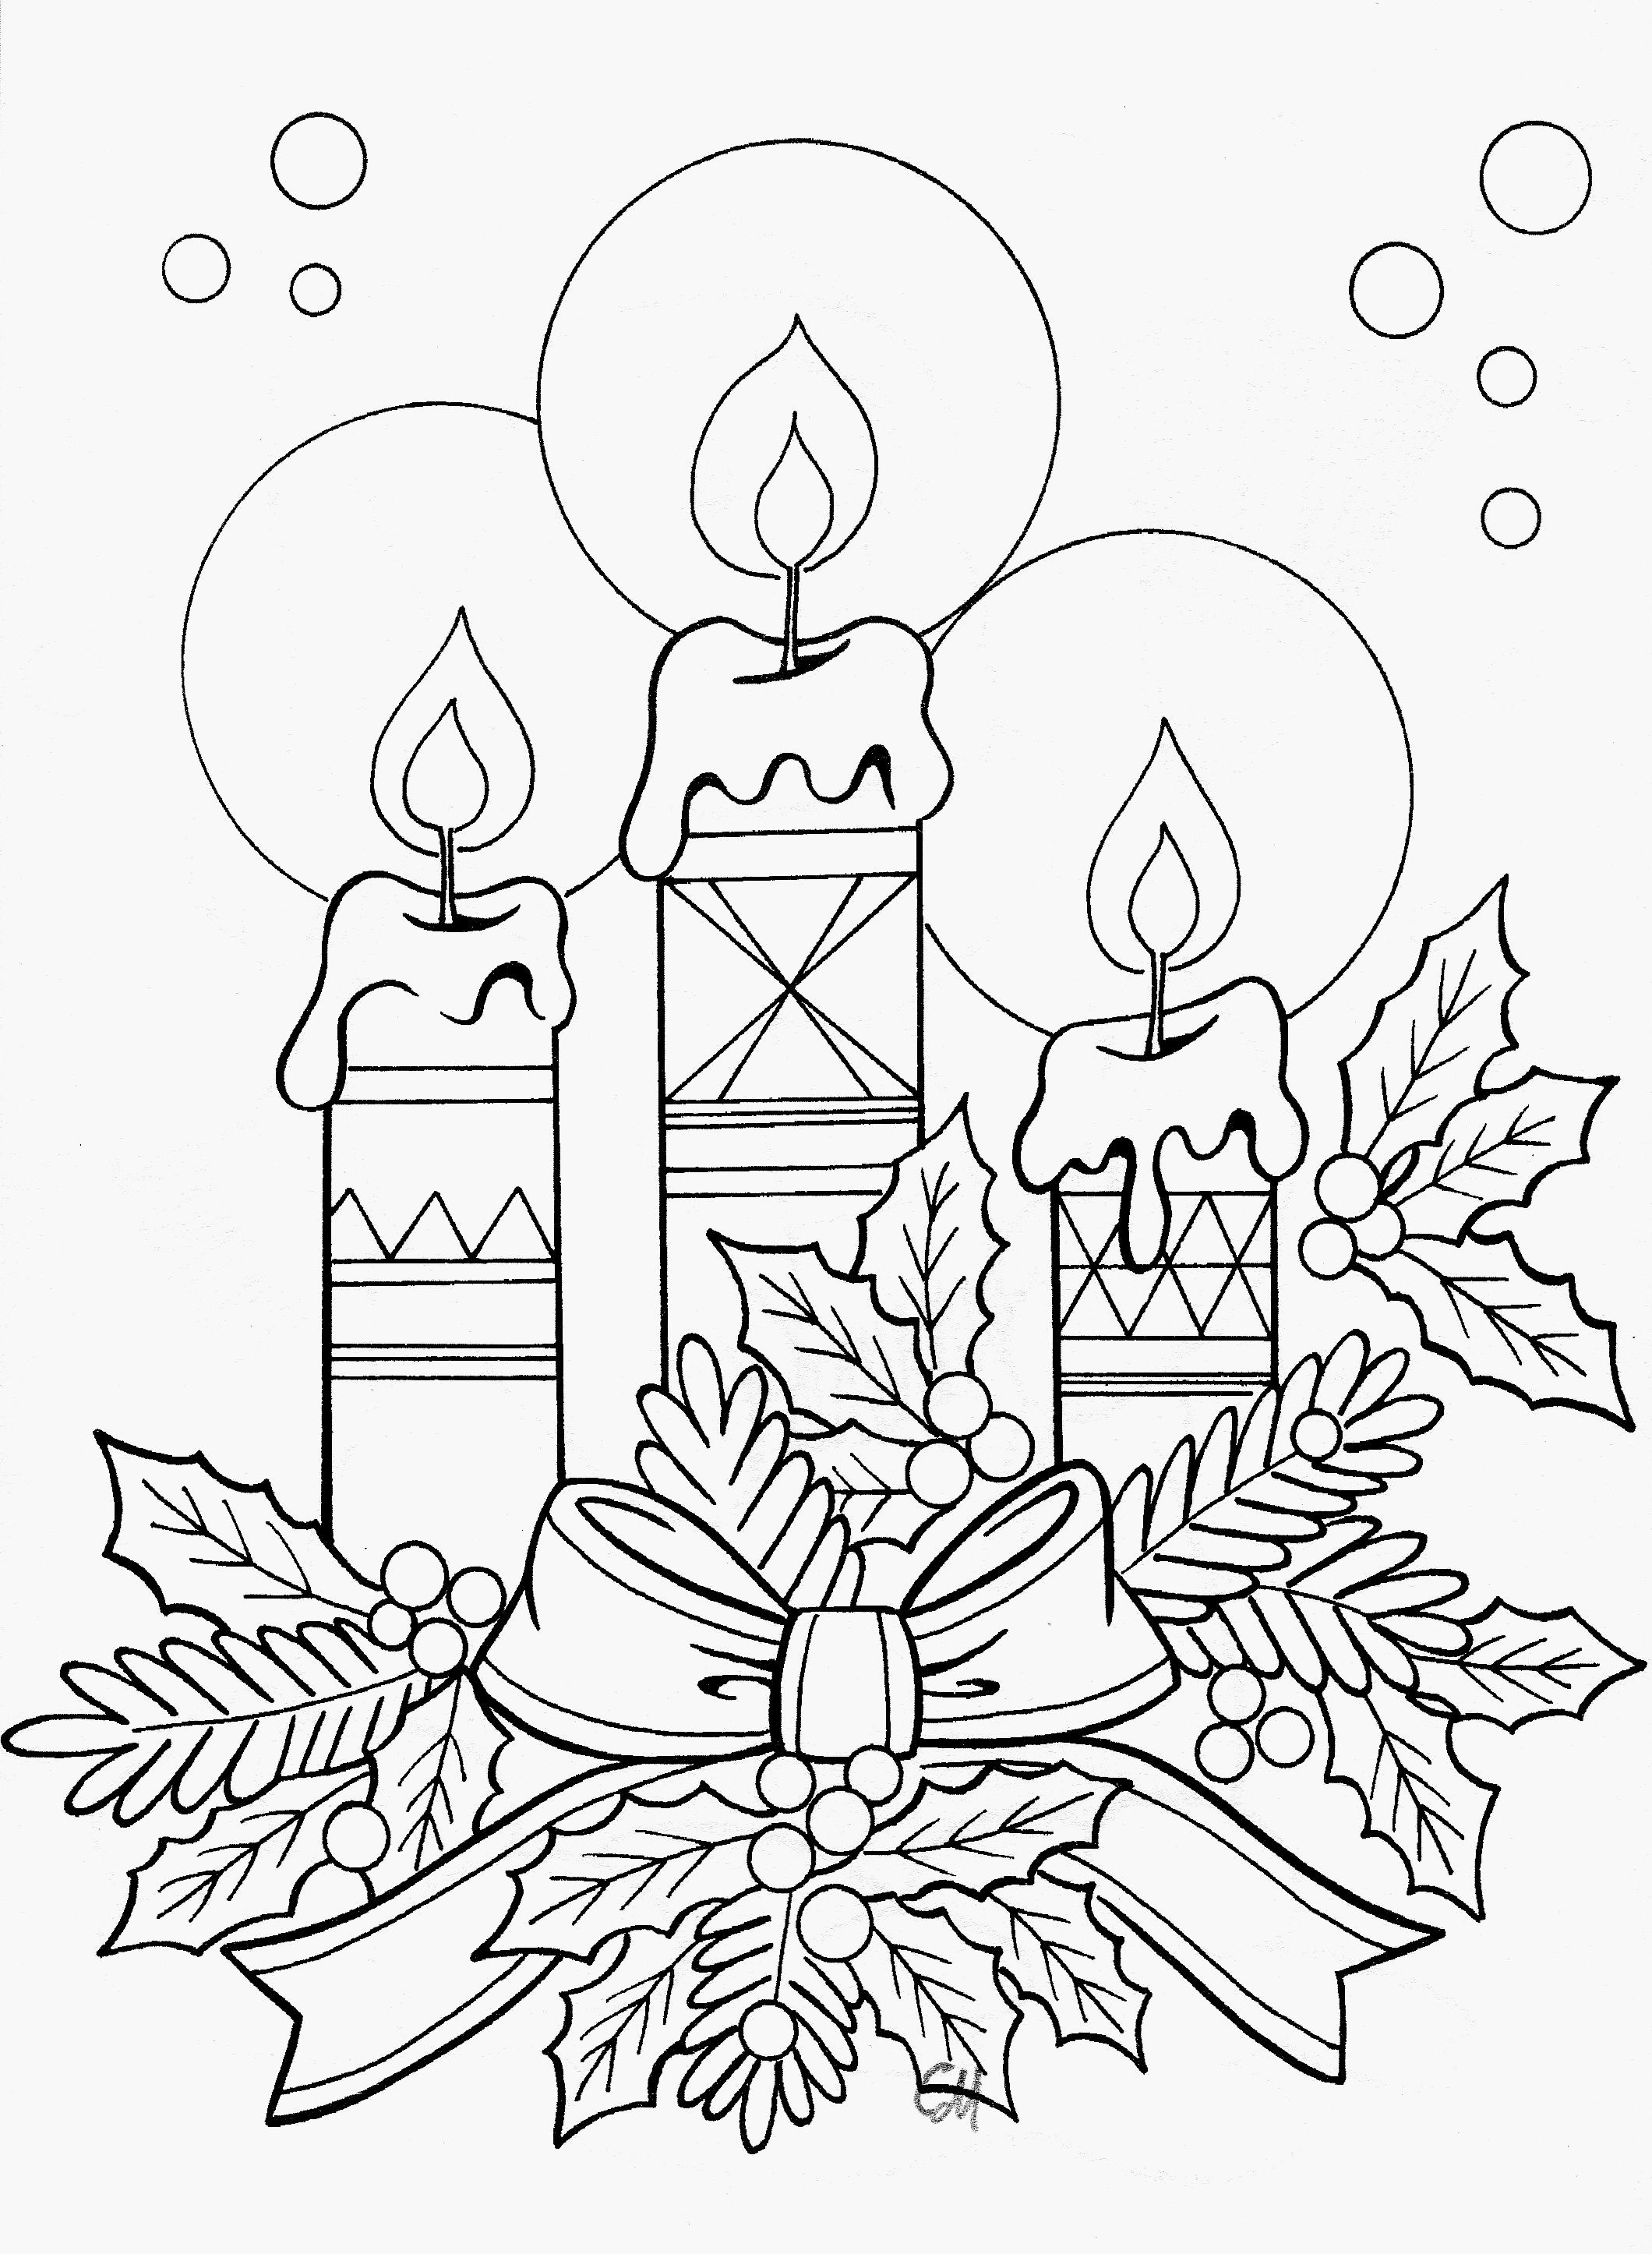 pin by suzanne hokanson on christmas pinterest christmas christmas colors and christmas coloring pages